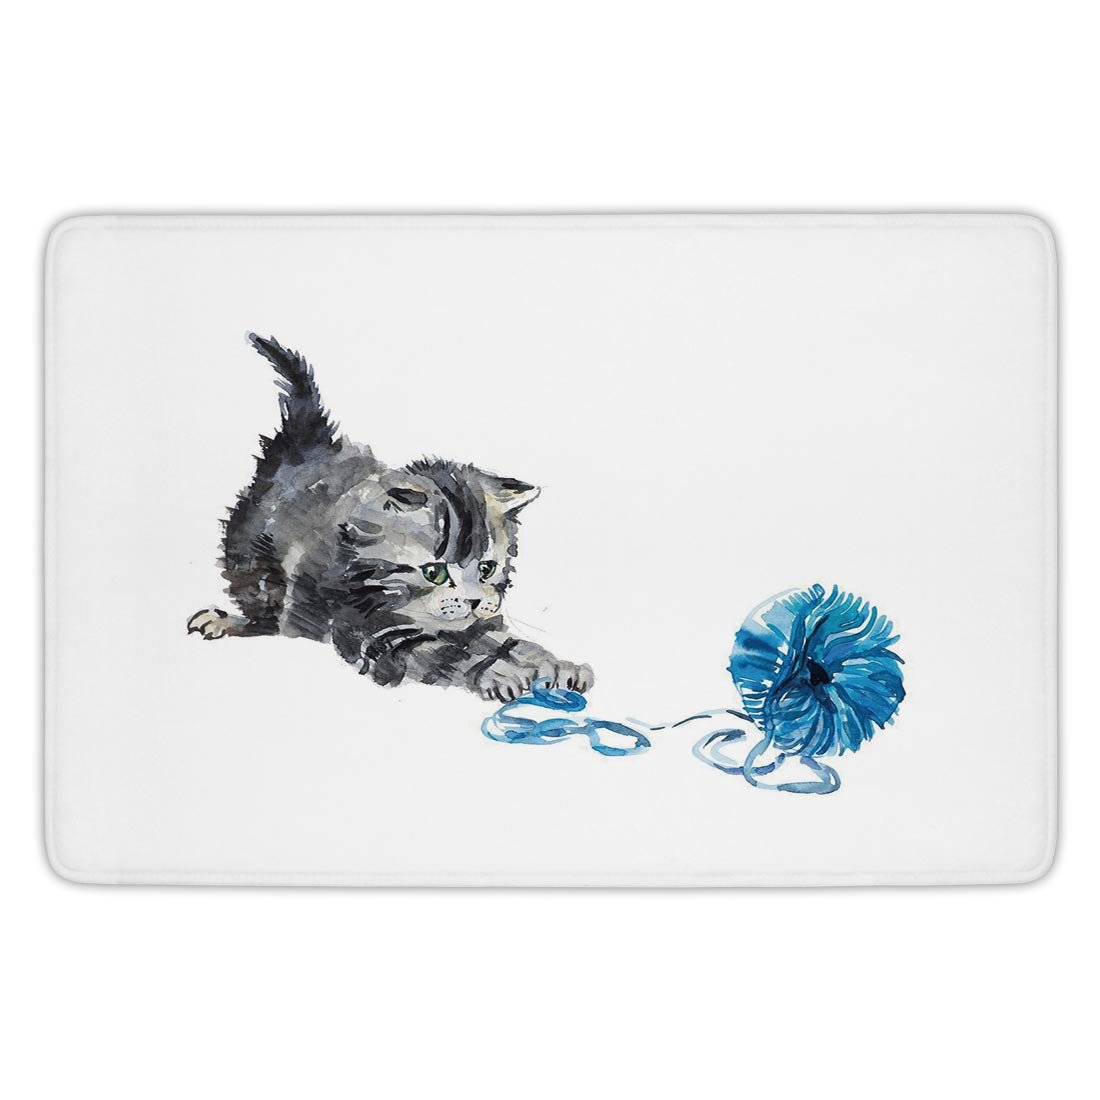 Bathroom Bath Rug Kitchen Floor Mat Carpet,Cat,Playful Baby Kitten with Ball of Yarn Furry Animal Domestic Feline Kids Pets Artwork,Grey Blue,Flannel Microfiber Non-slip Soft Absorbent